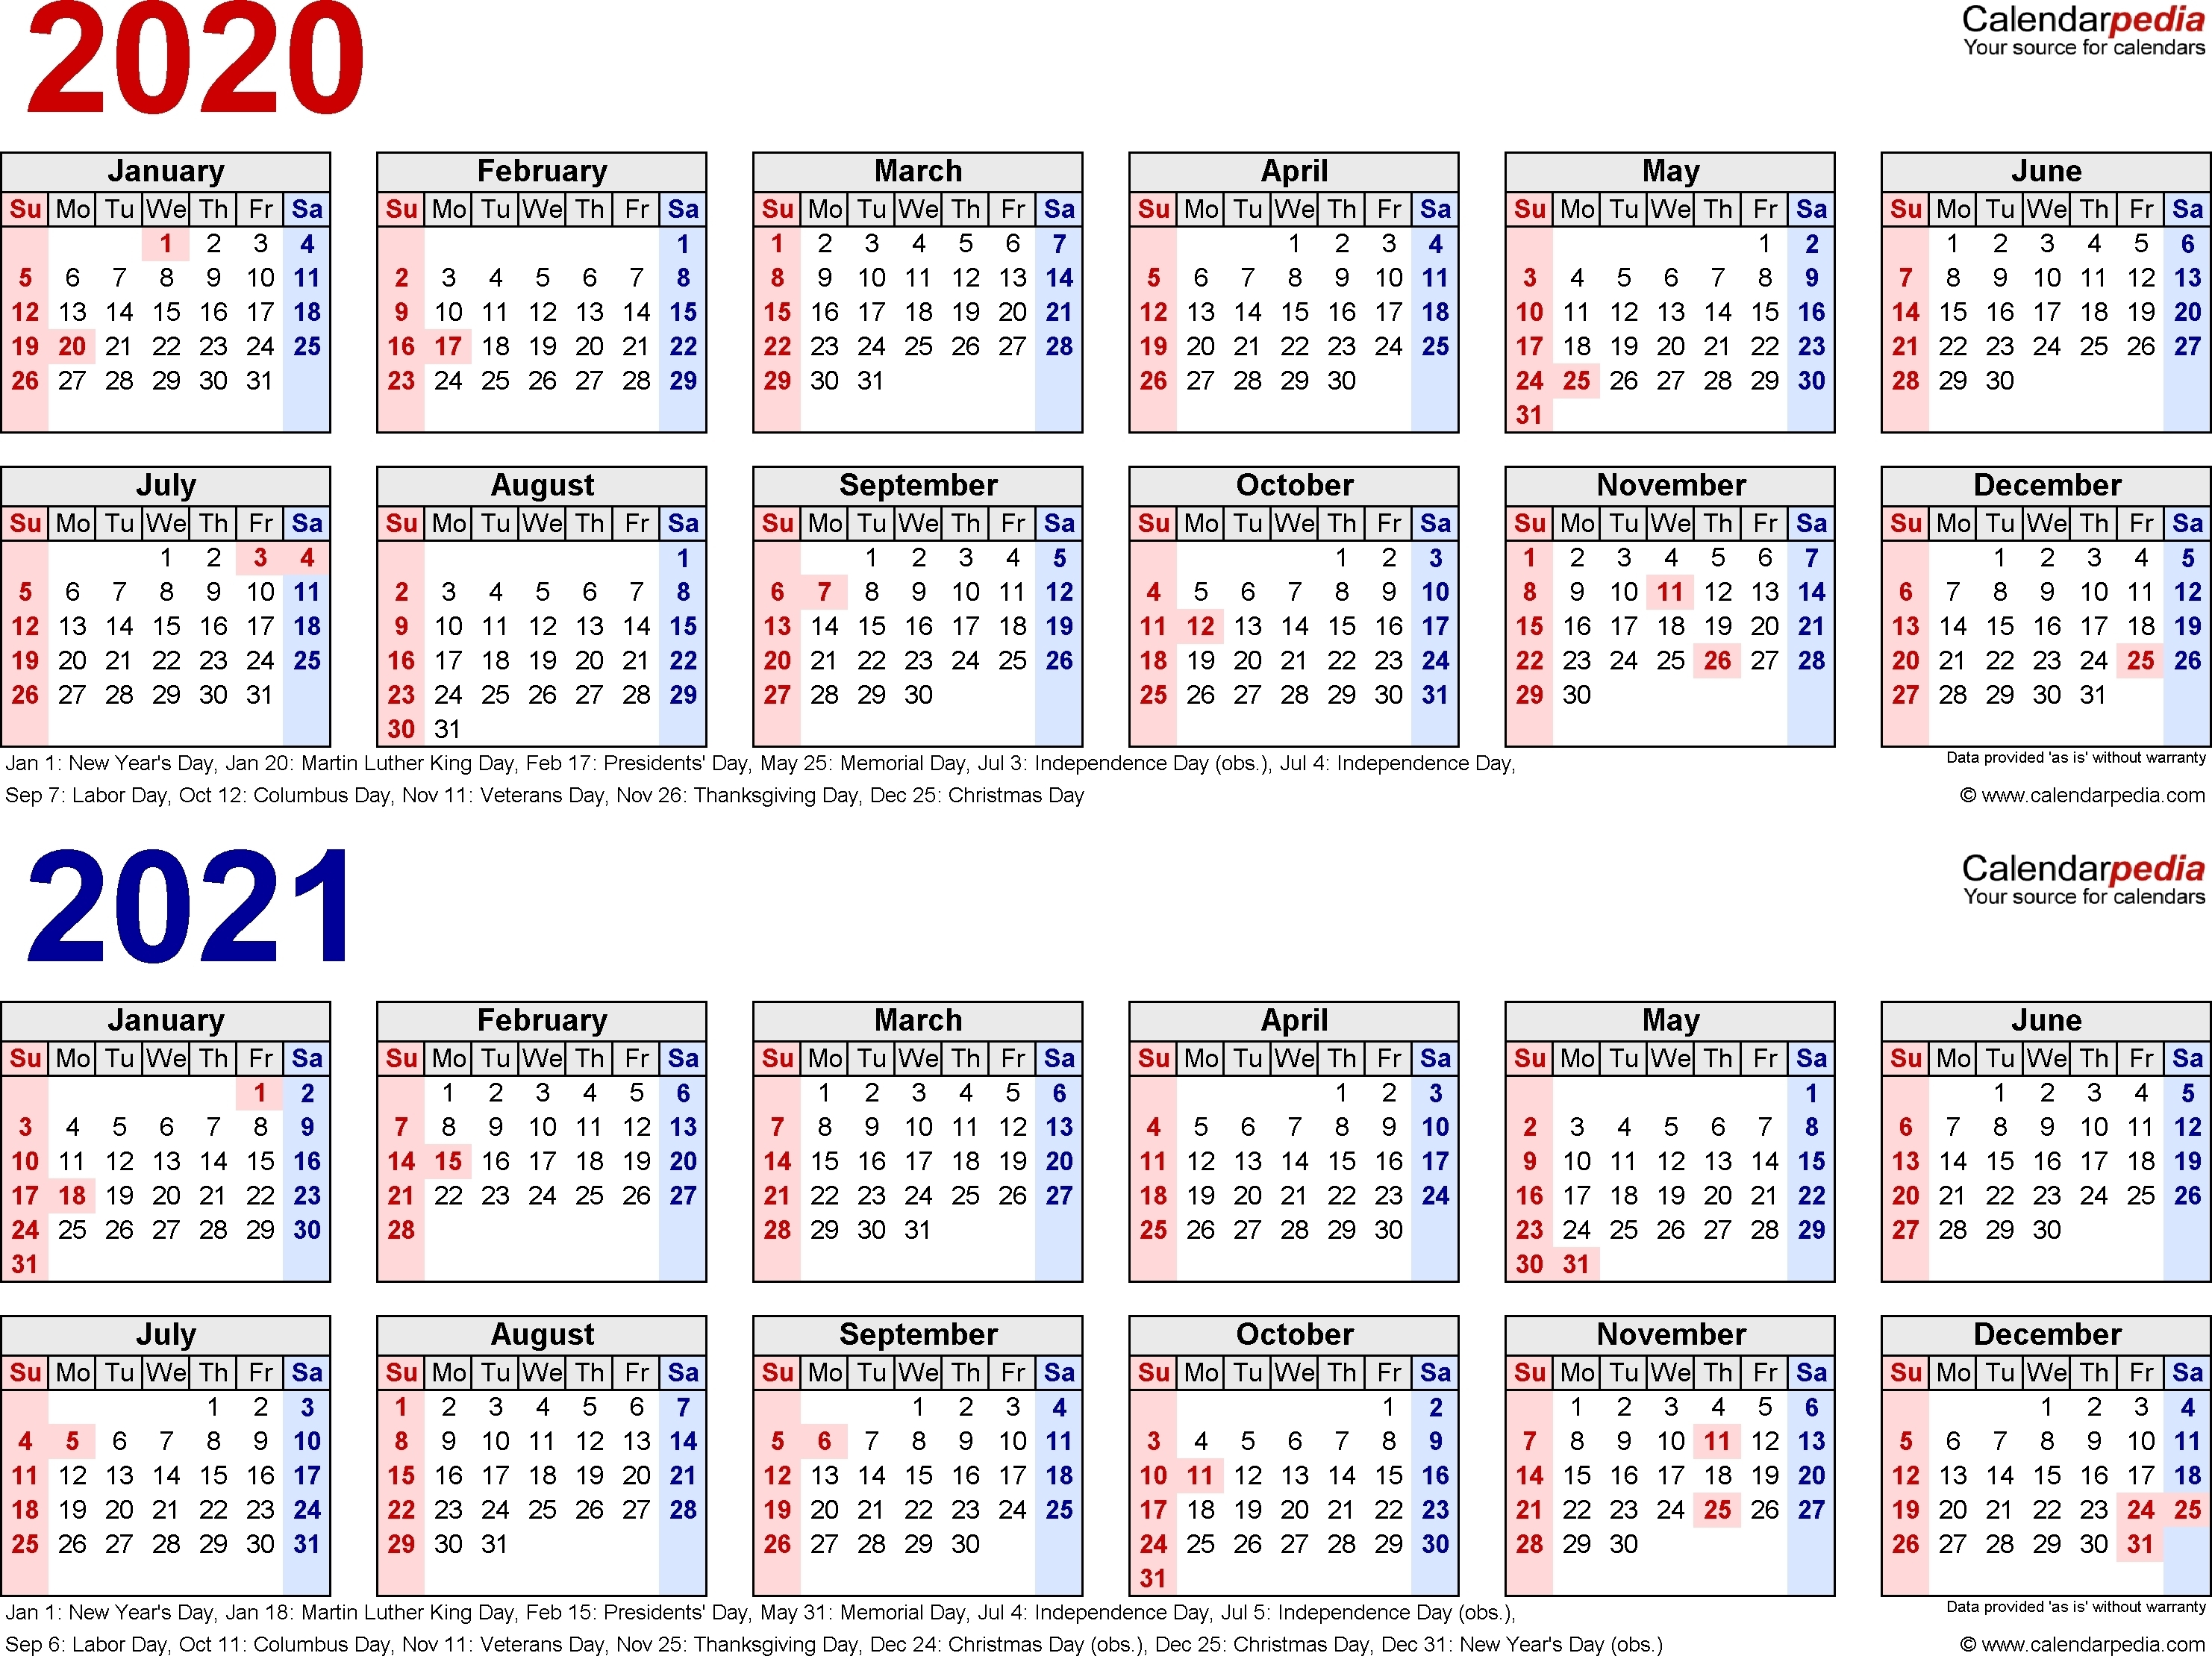 April 2020 Calendar With Holidays Philippines | Calendar-Holidays To The Philipines In March 2020